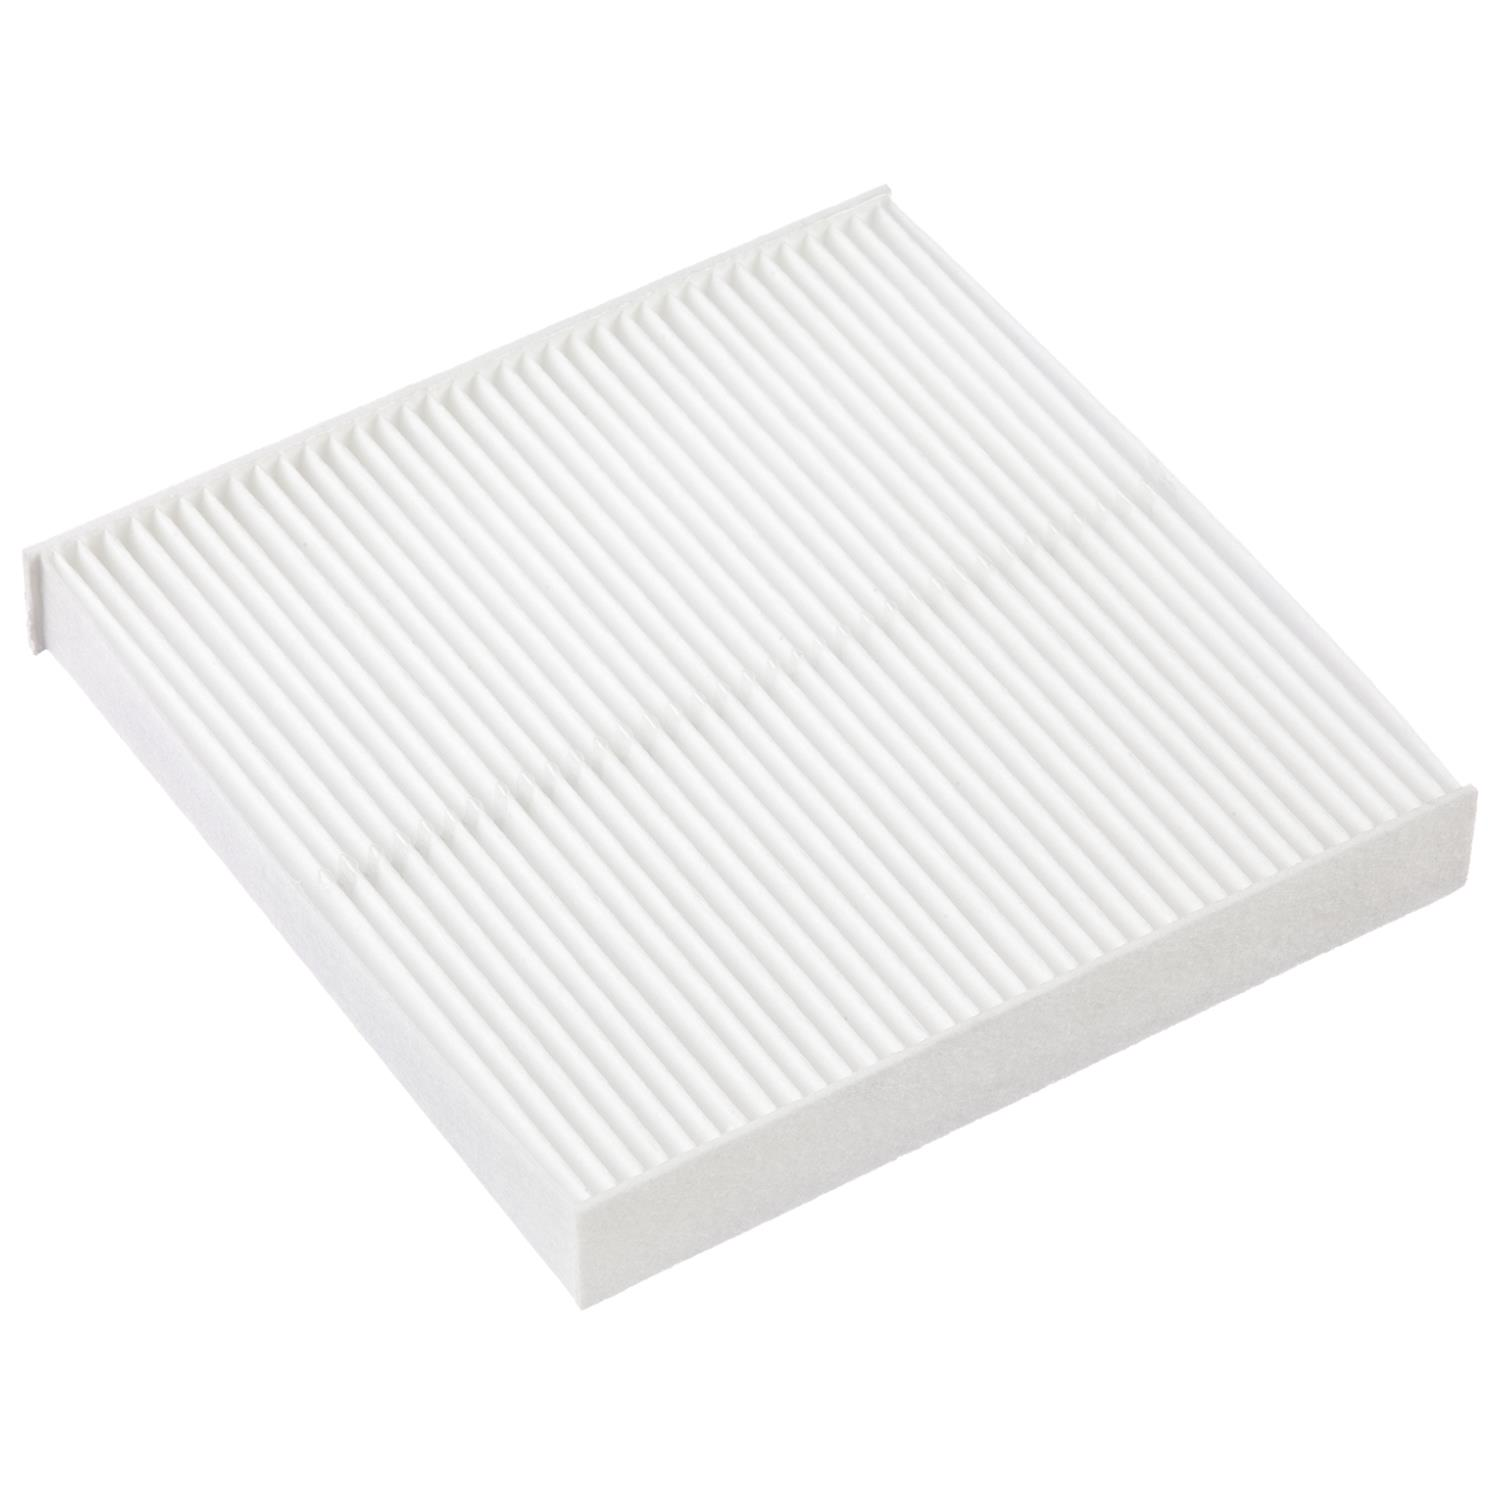 Atp Automotive Cf 240 Replacement Cabin Filter